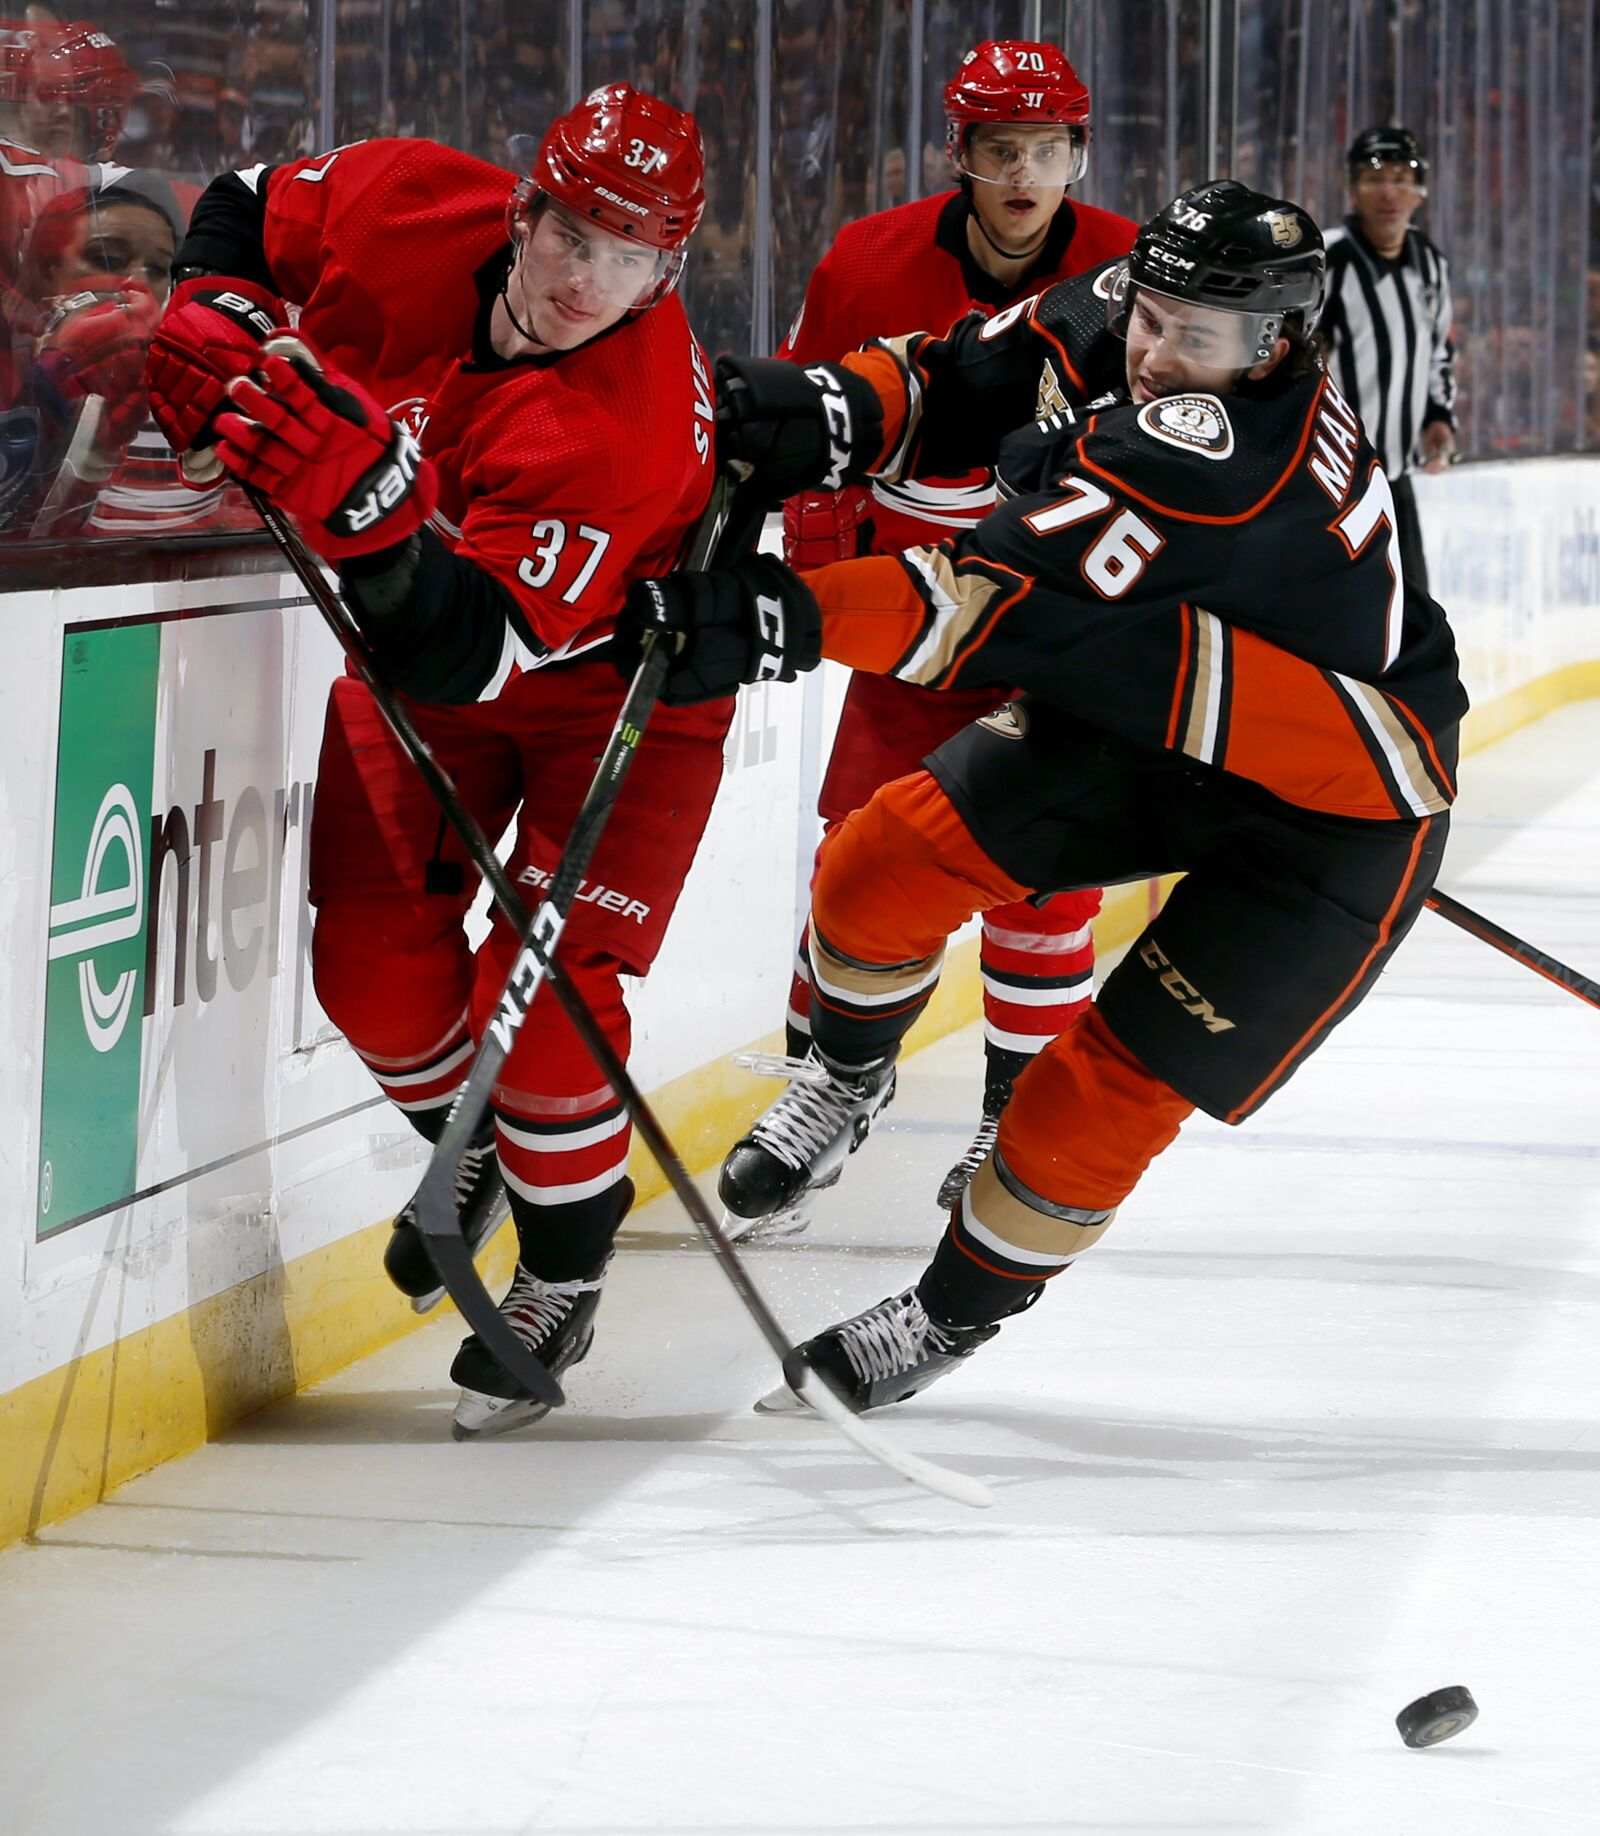 Carolina Hurricanes Fantasy Picks After Dark Verses Ducks